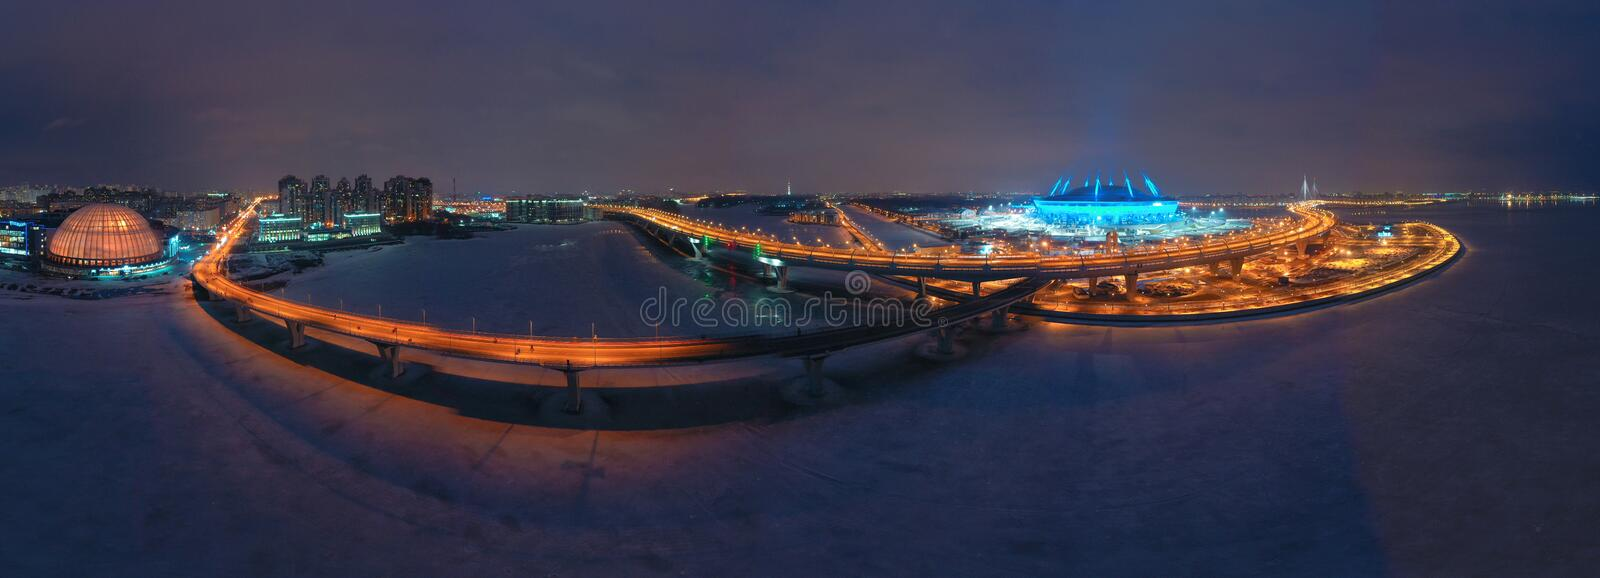 Saint-Petersburg, Krestovsky Island. Russia. The Neva River flows into the Gulf of Finland. High-speed highway. Stadium. Evening. Petersburg. Cities of Russia stock photos